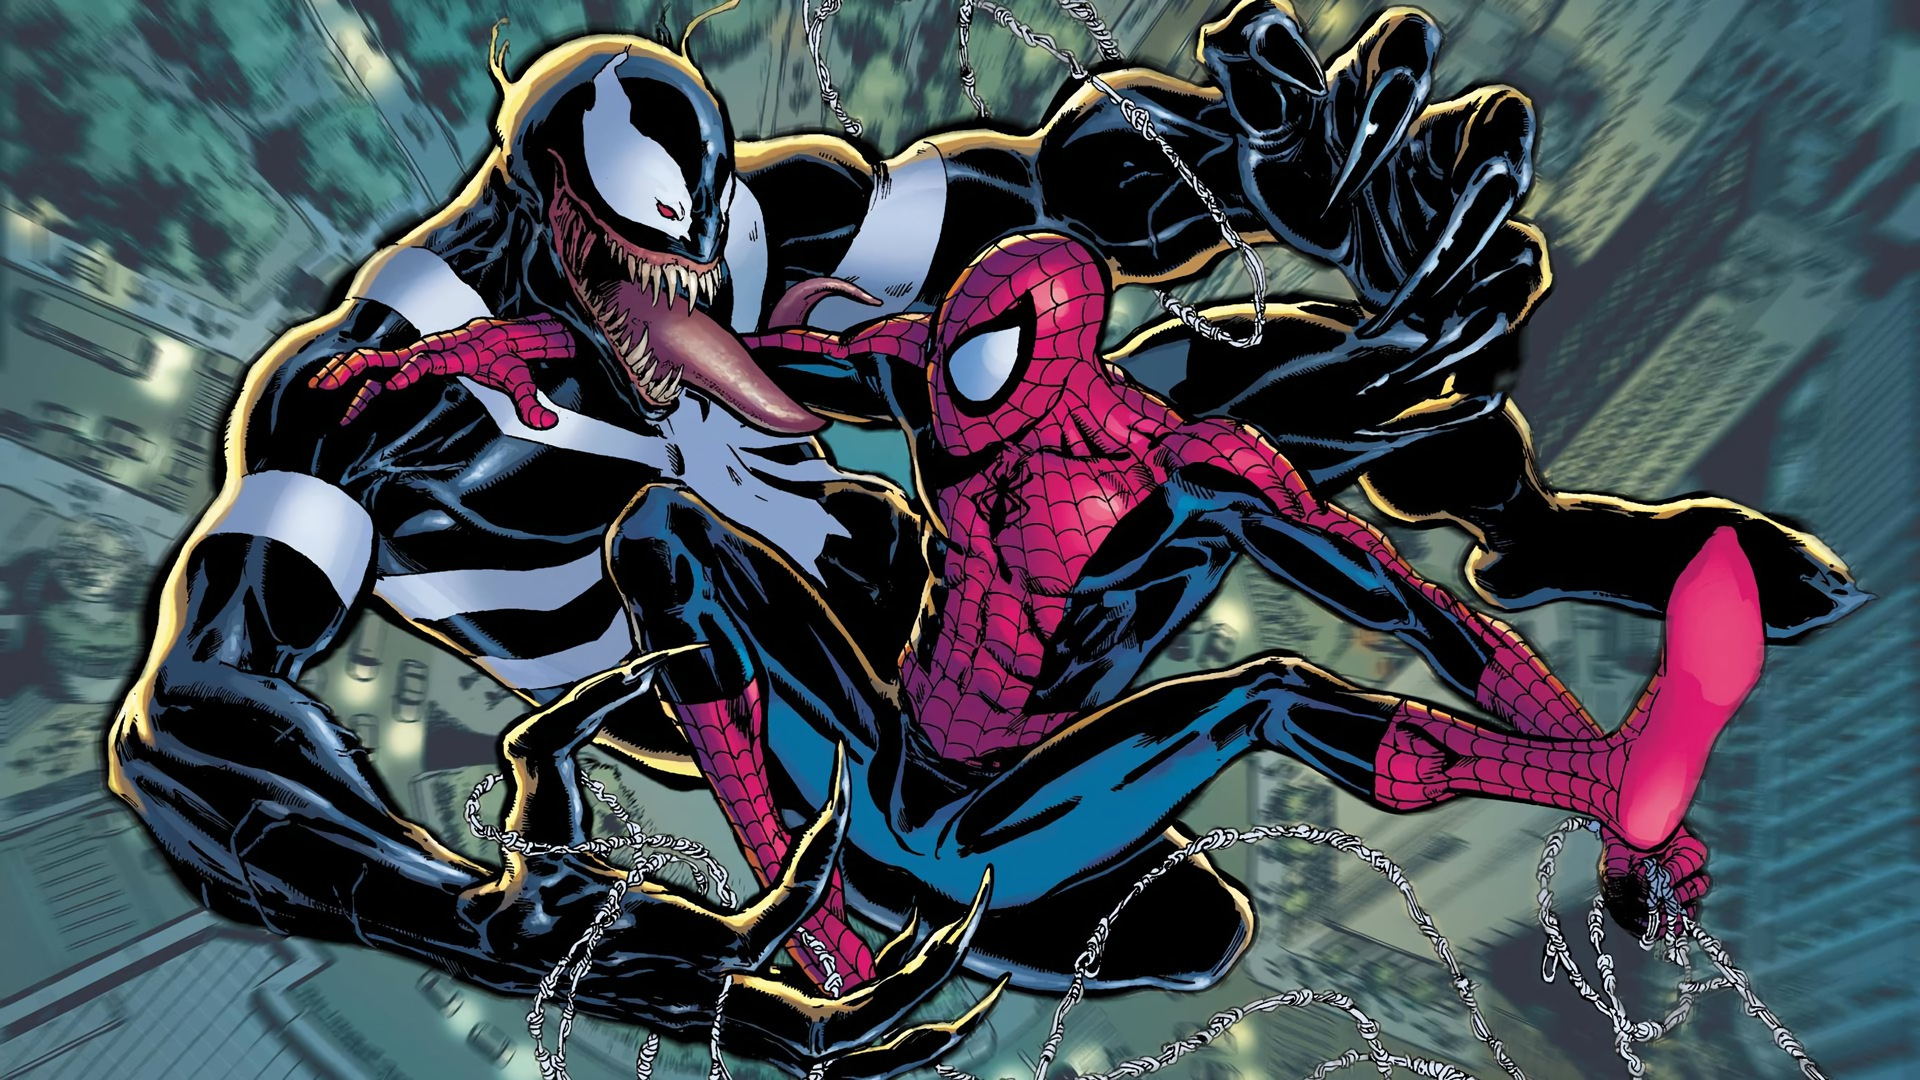 Spider Man Image Download: Venom Vs Spiderman HD Wallpaper